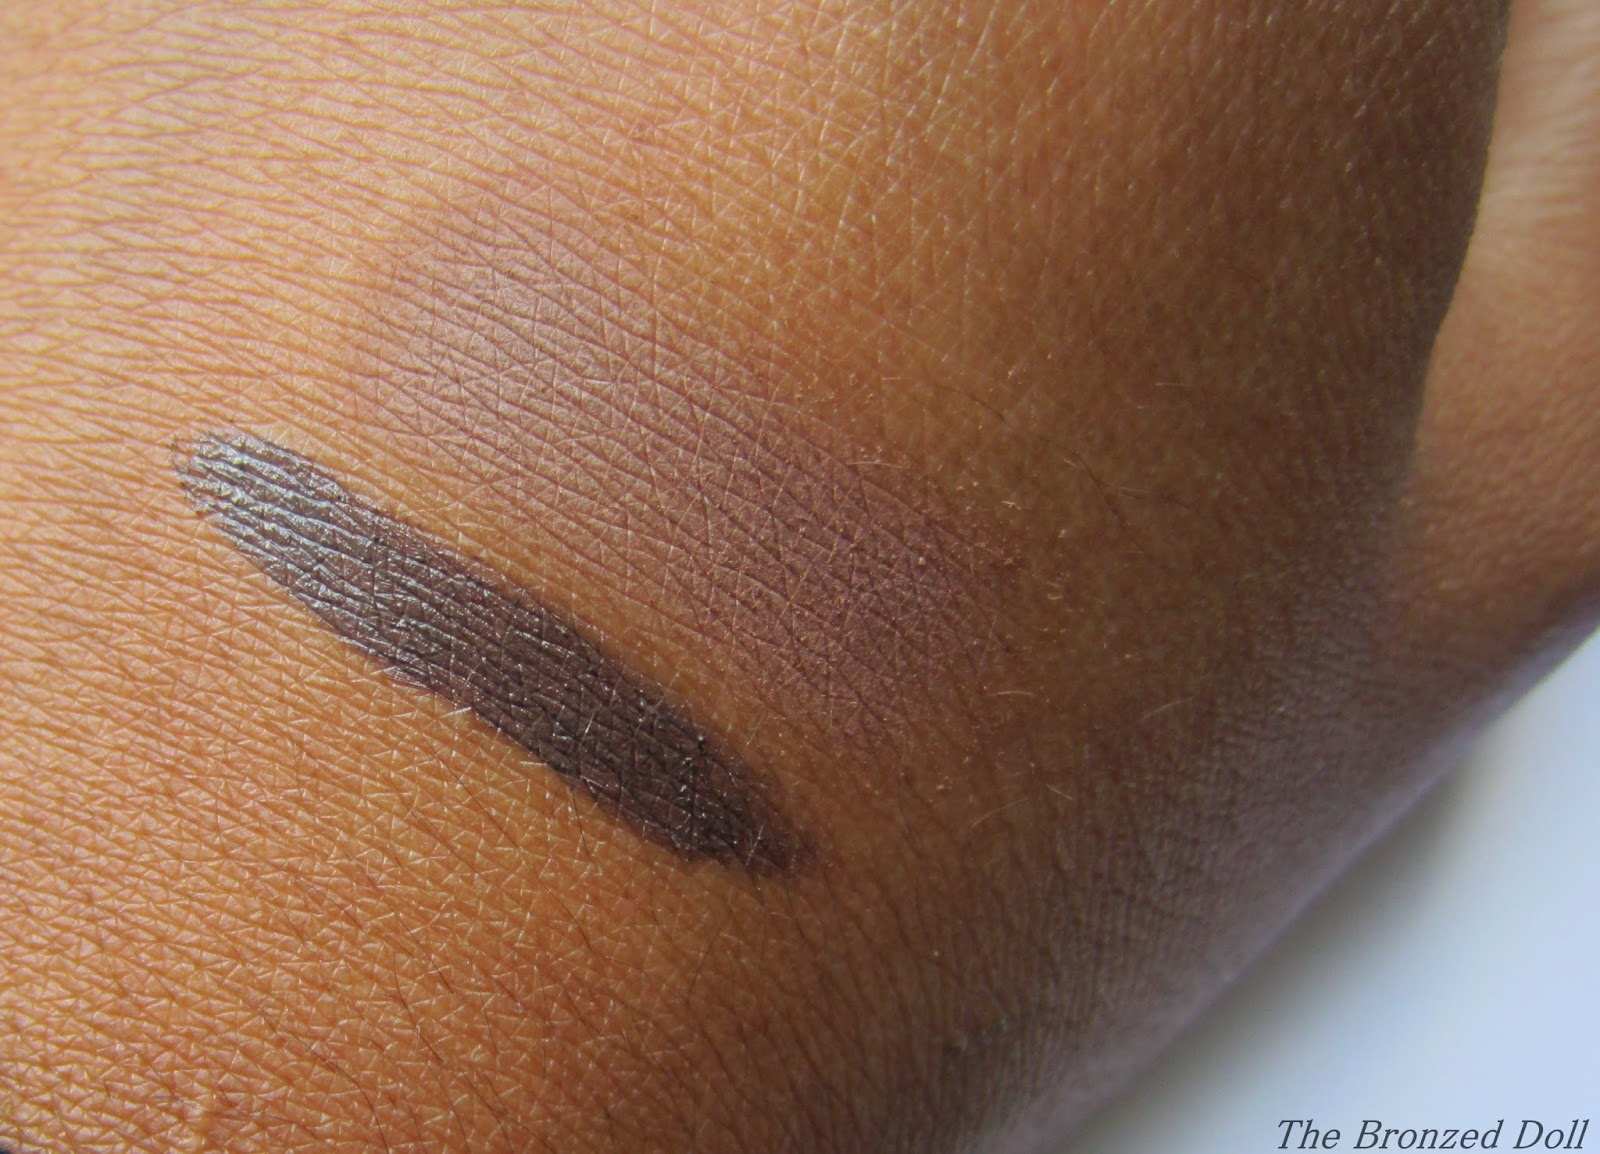 e.l.f studio eyebrow kit in medium swatch